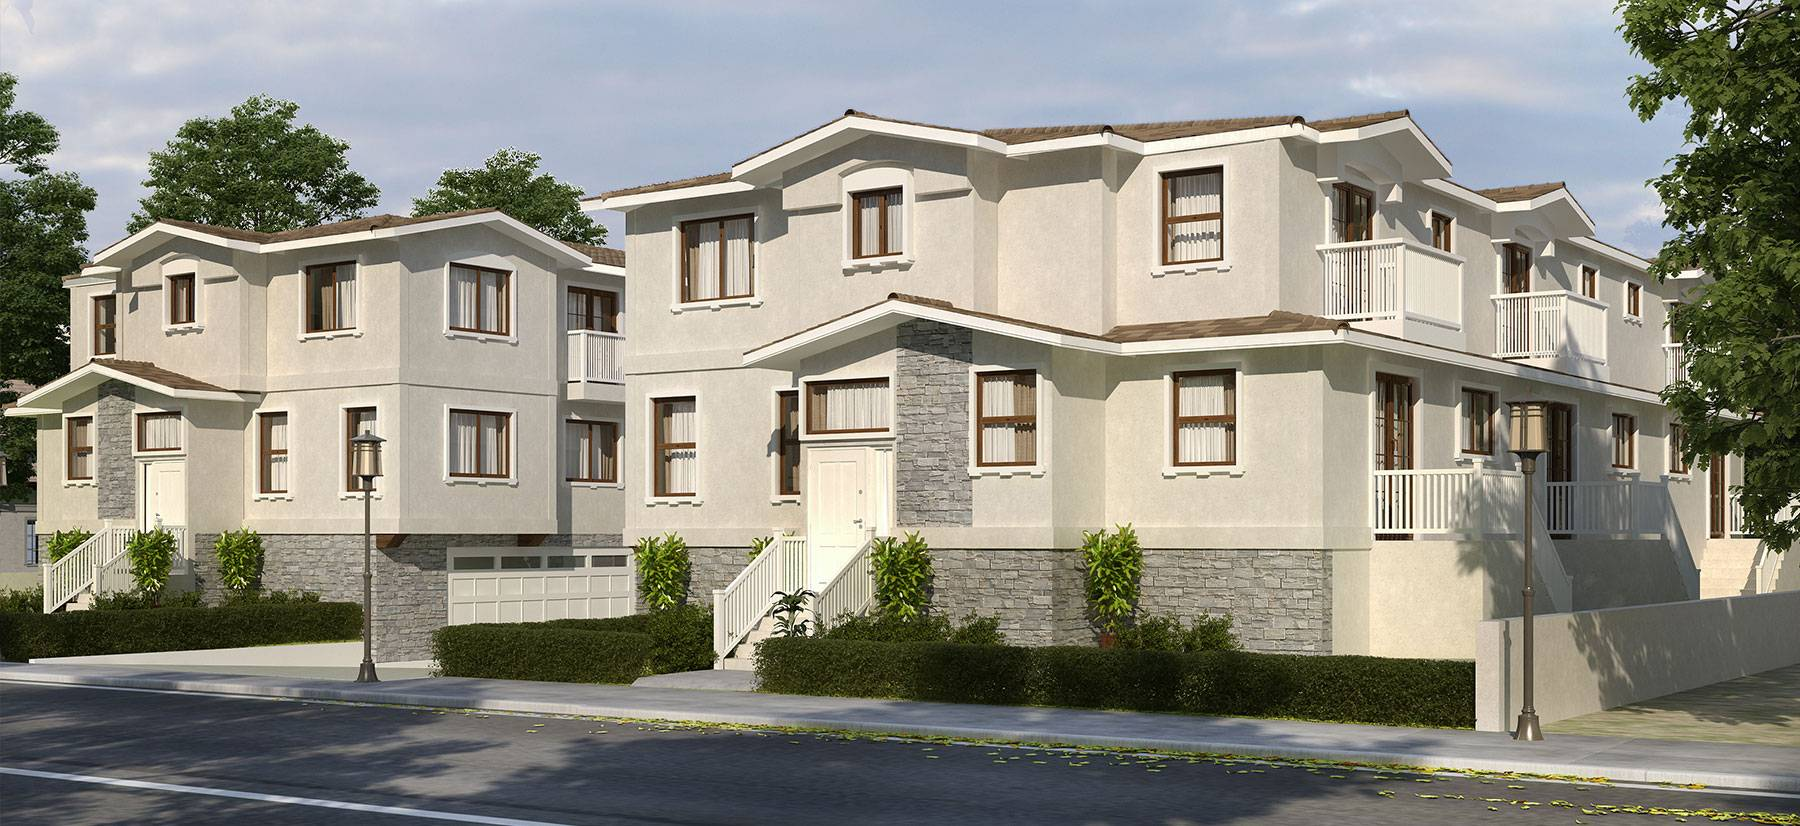 sample multi-family housing project by the City government of Riverside